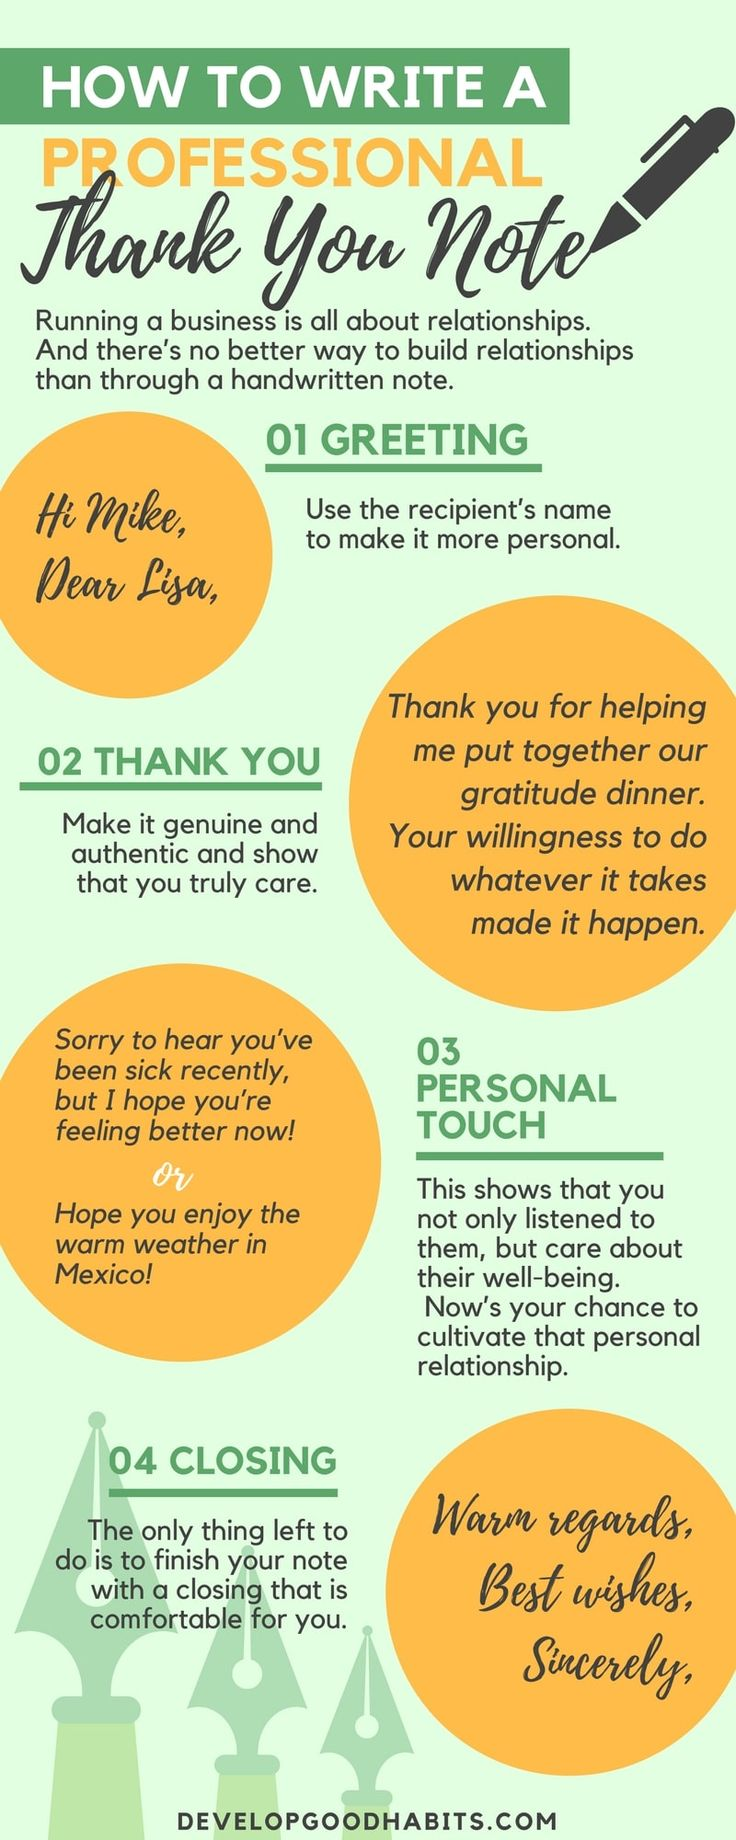 Learn how to word a professional thank you note to send to your business connections. #infographic #business #career #cashflow #entrepreneurs #money #productivity #success #tips #thankyou #cards #success #gratitude #selfcare